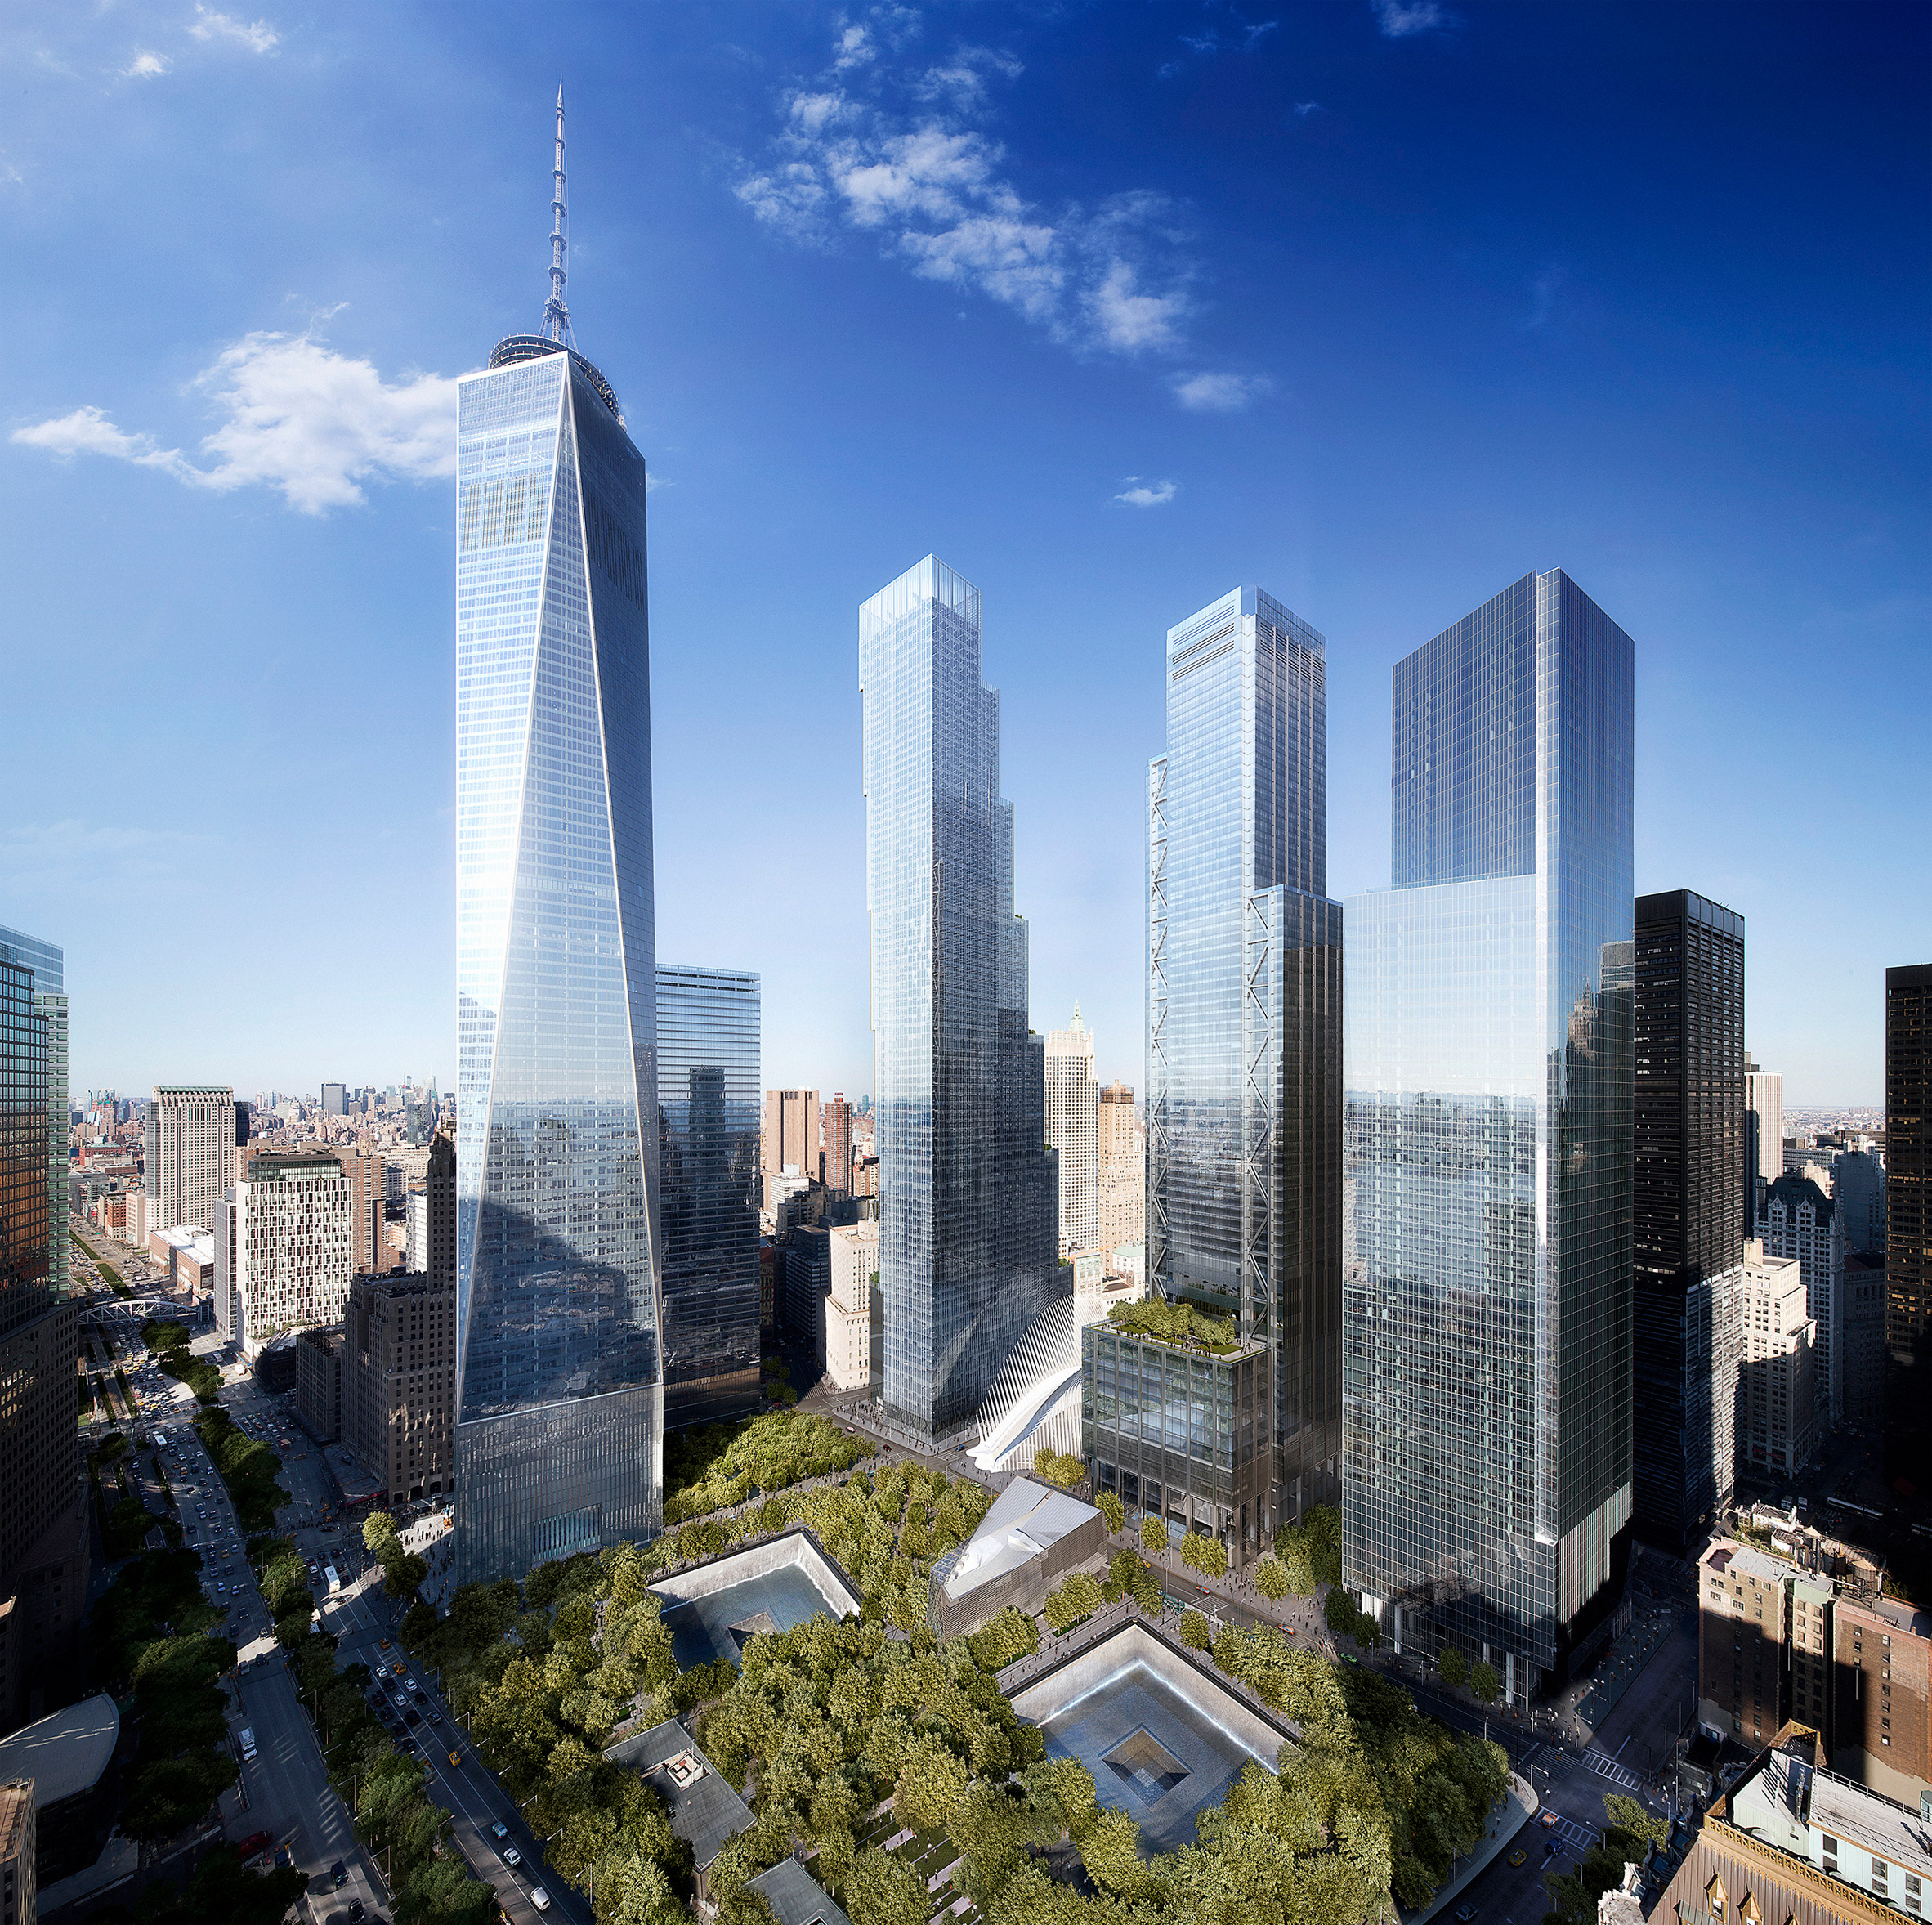 BIG's Two World Trade Center nixed for